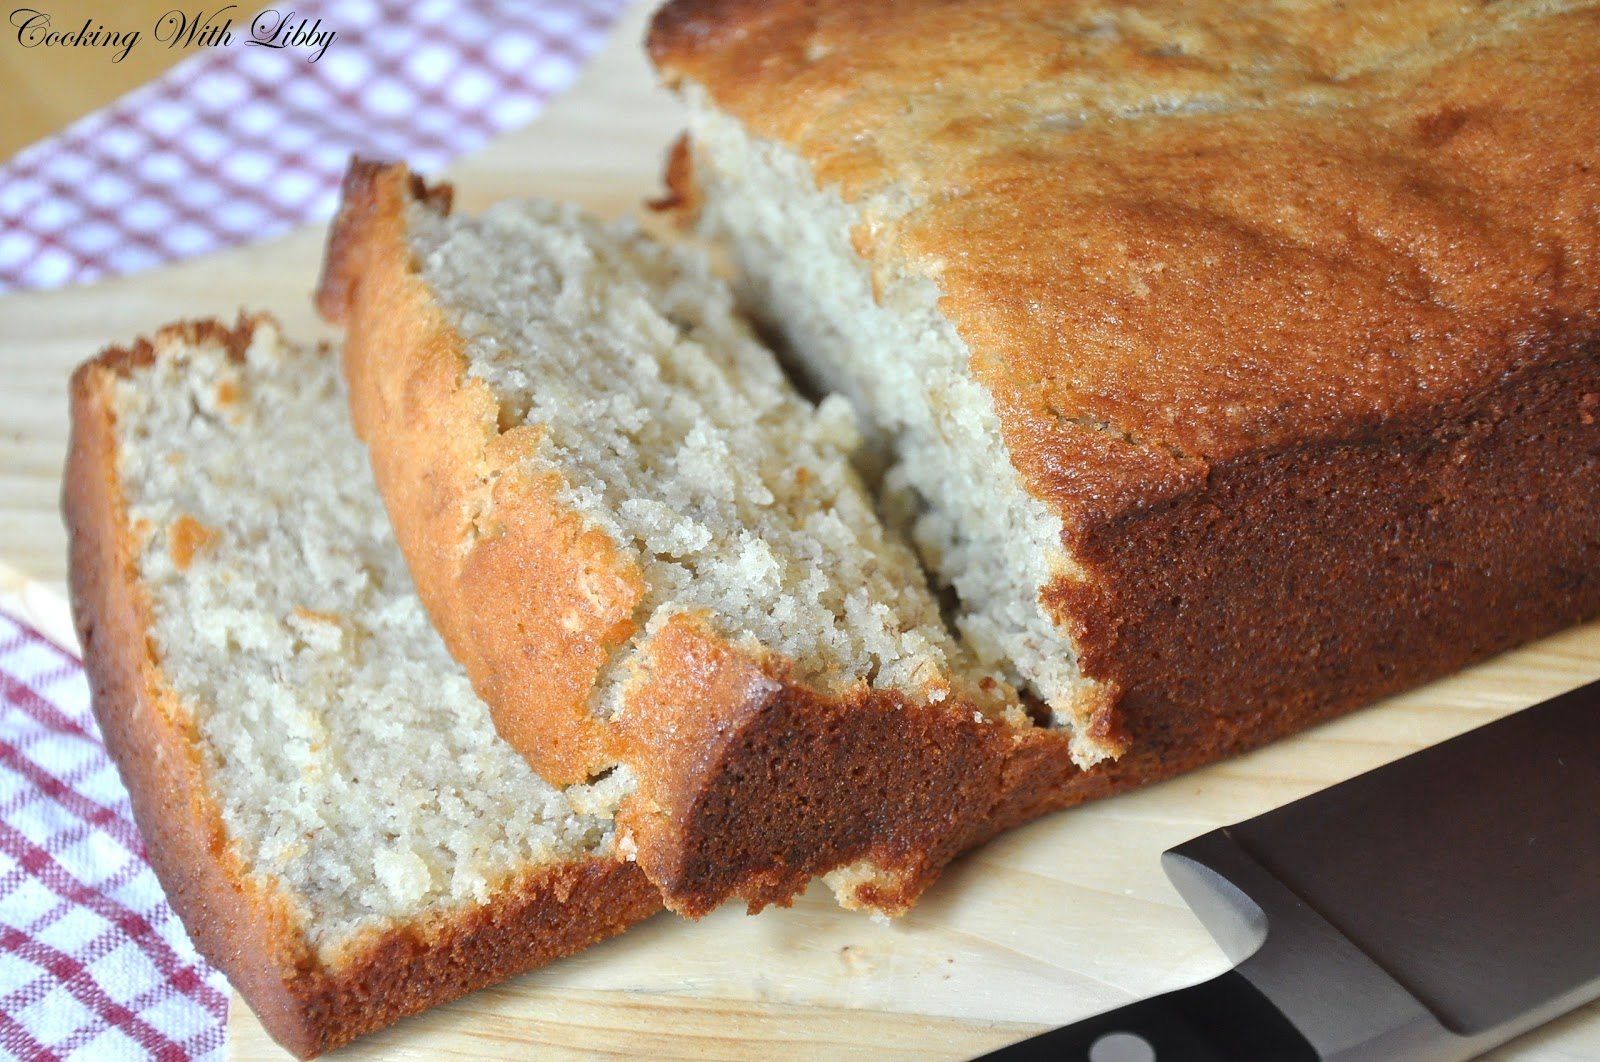 Cooking With Libby: Buttermilk & Sour Cream Banana Bread